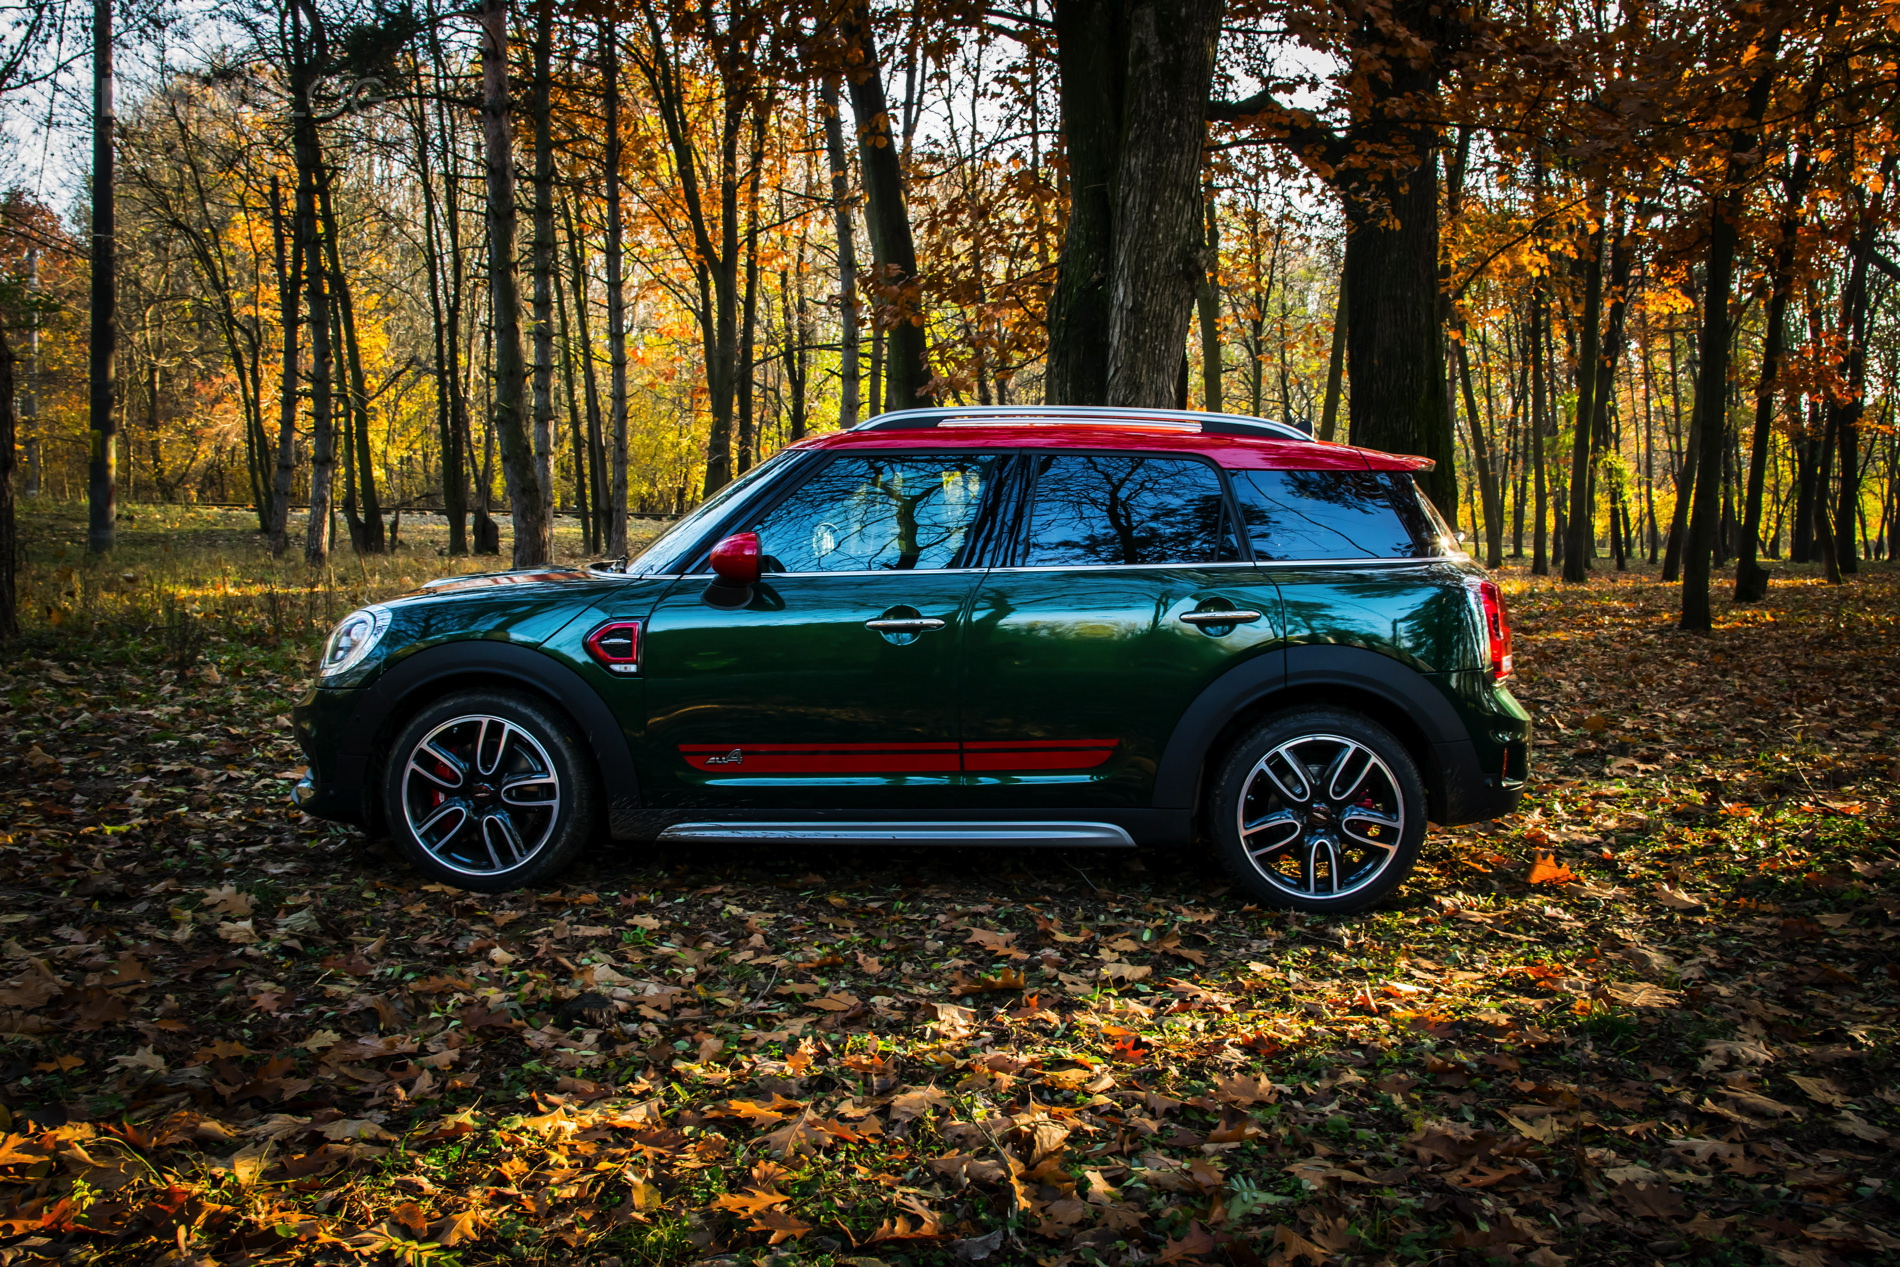 Of Course Mini Had To Adapt The Trademark Styling People Have Been Getting Used A New Shape That Isn T Exactly Most Gracious